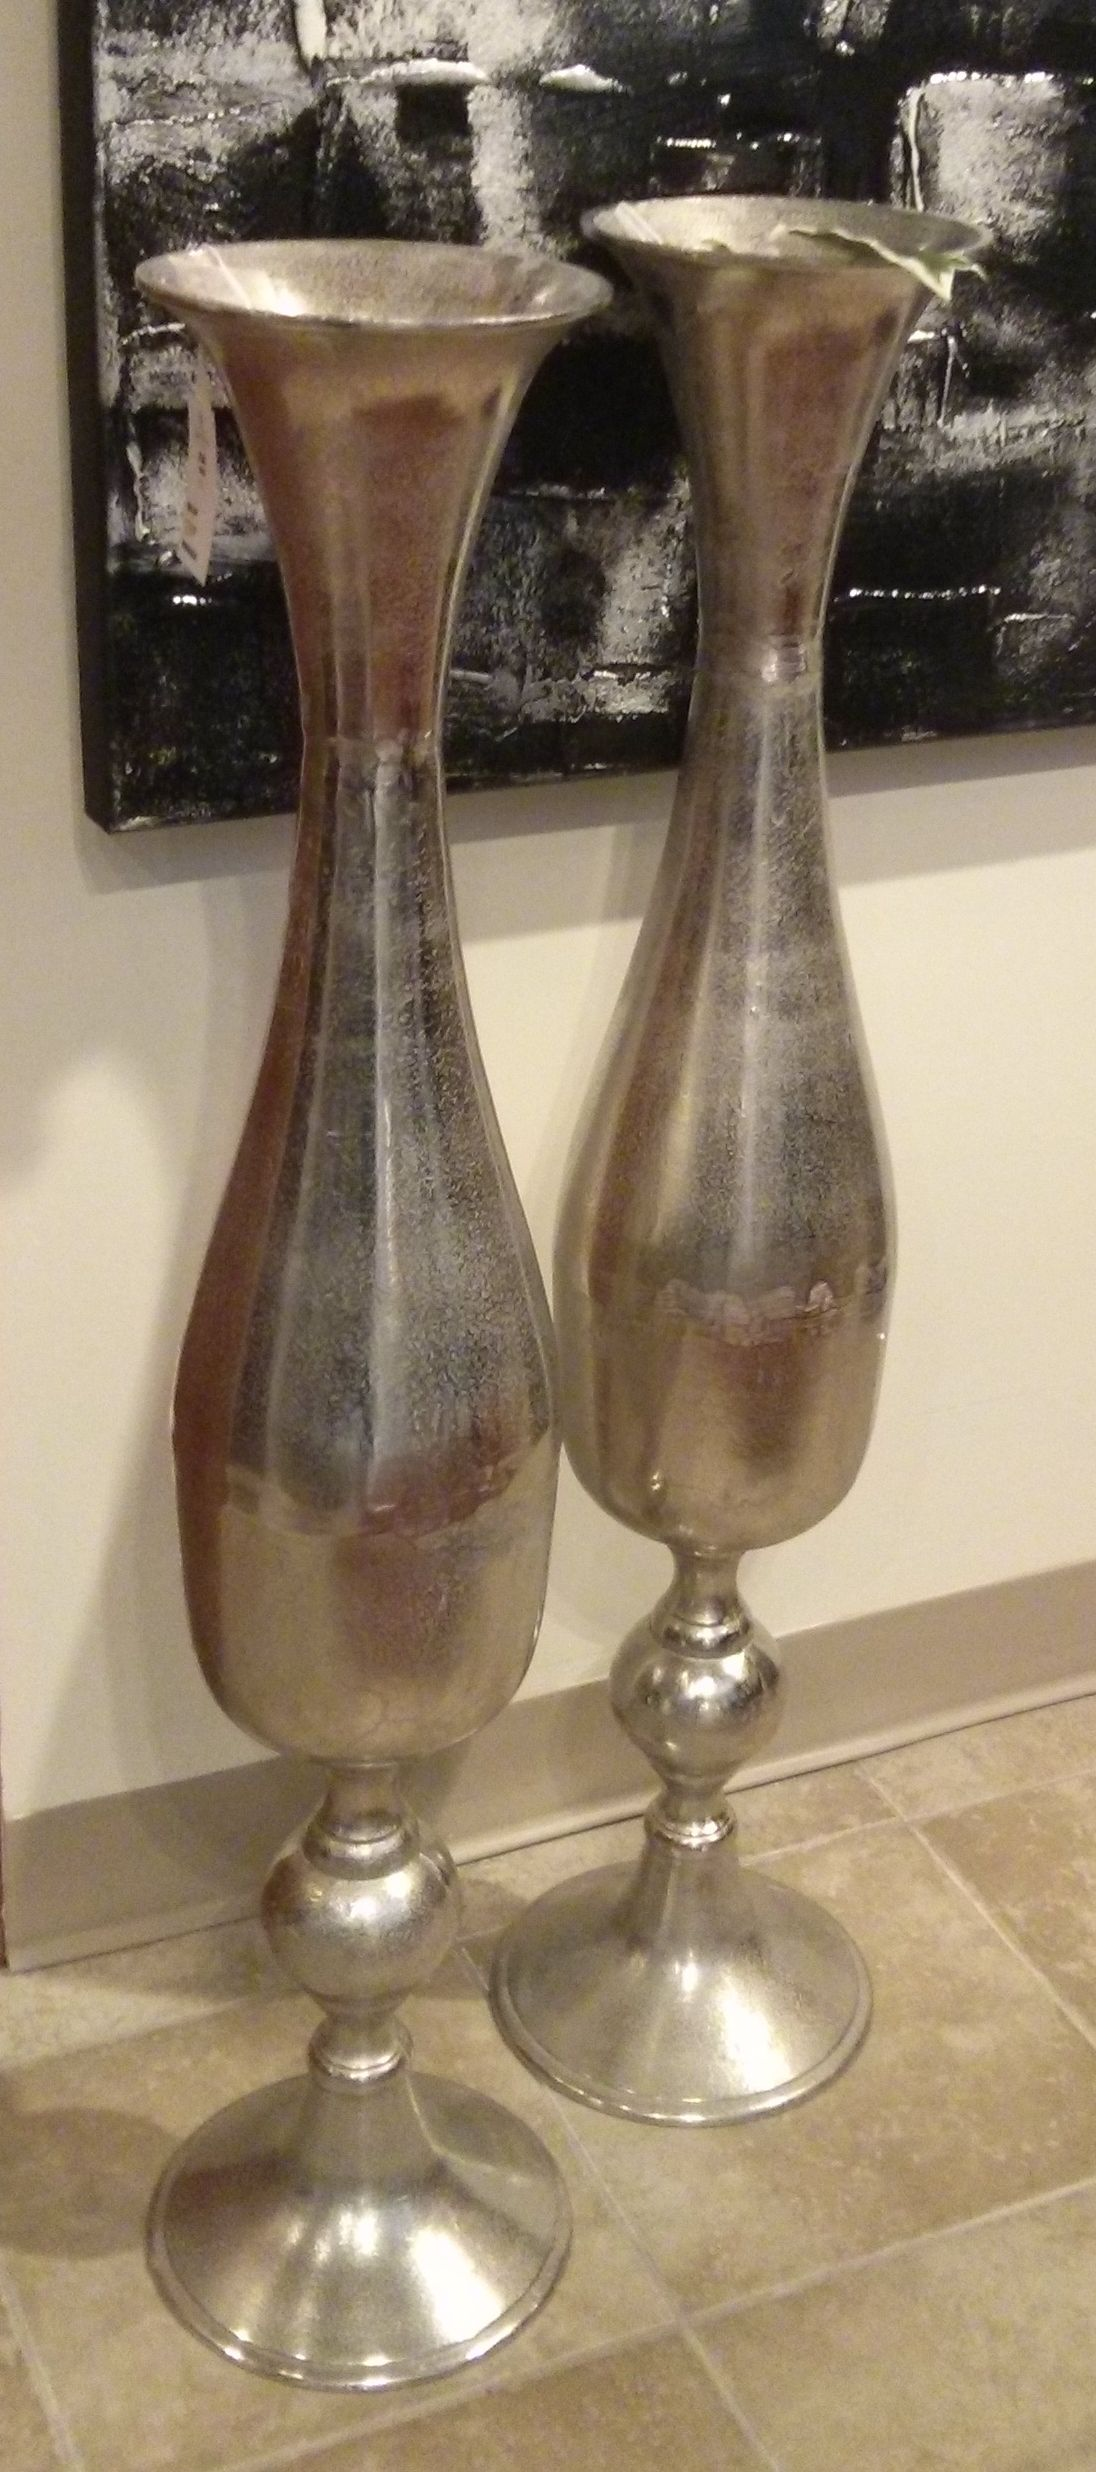 Accessories large silver vase visit our showroom we have wide accessories large silver vase visit our showroom we have wide variety of free standing reviewsmspy